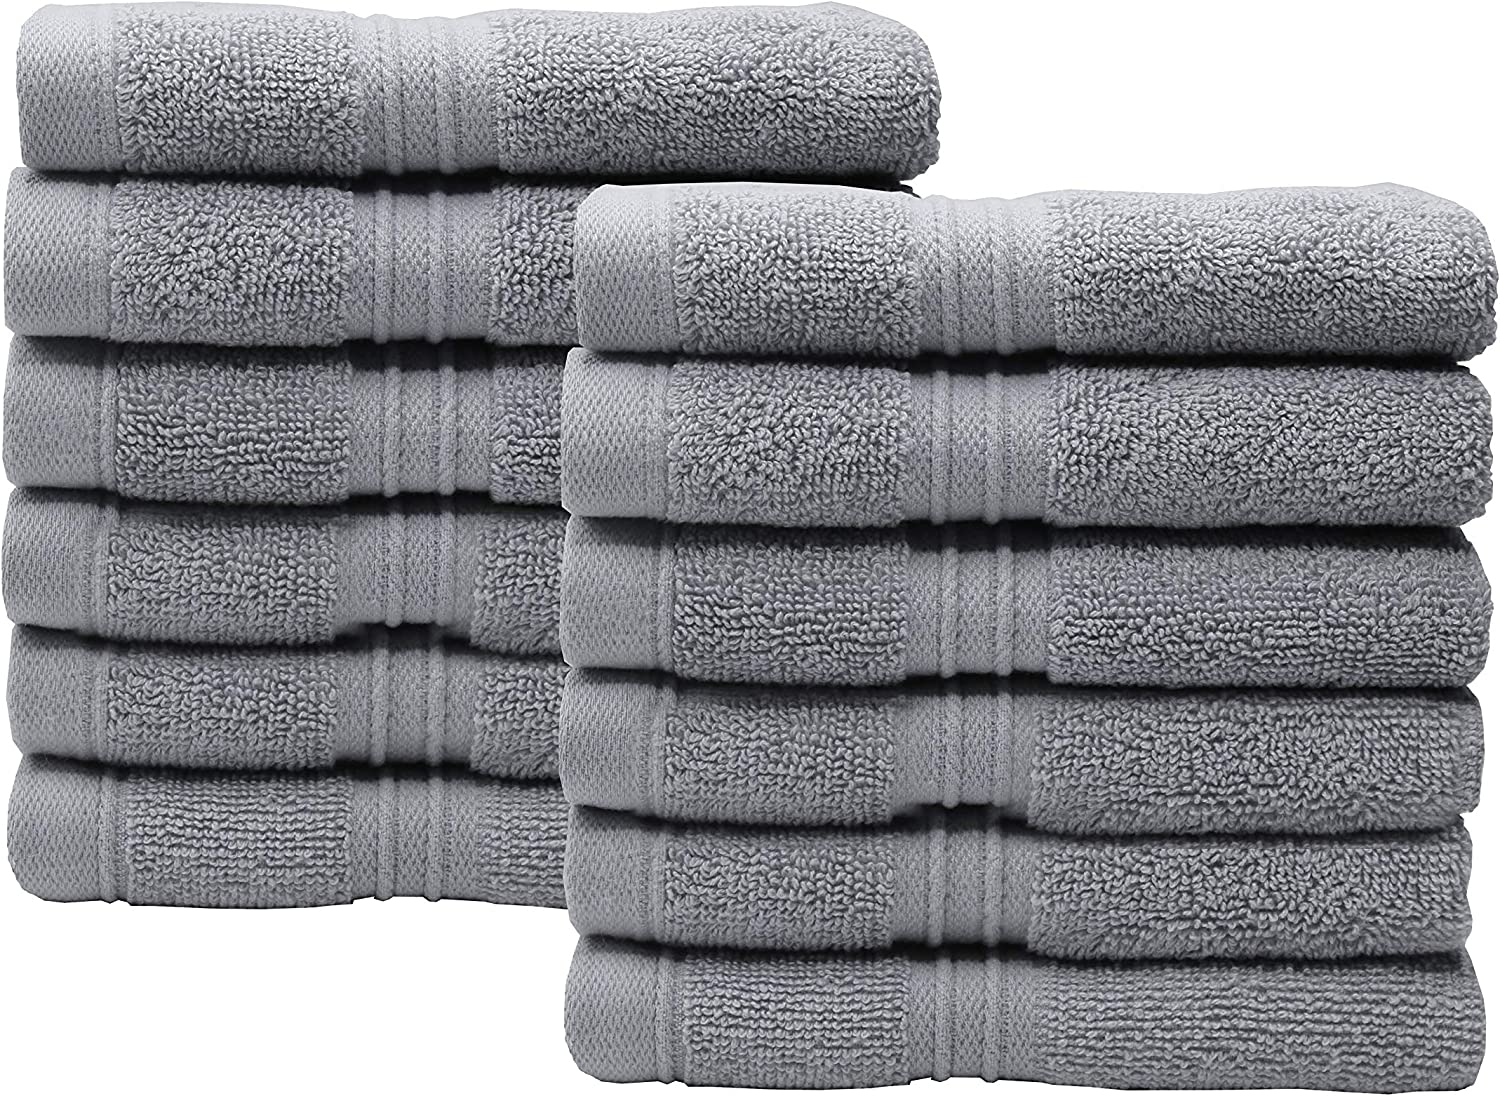 CB CASA BELLA The ultimate linen 700 GSM PACK OF 12 100/% COTTON FACE CLOTH TOWELS FLANNELS WASH CLOTH/_Black